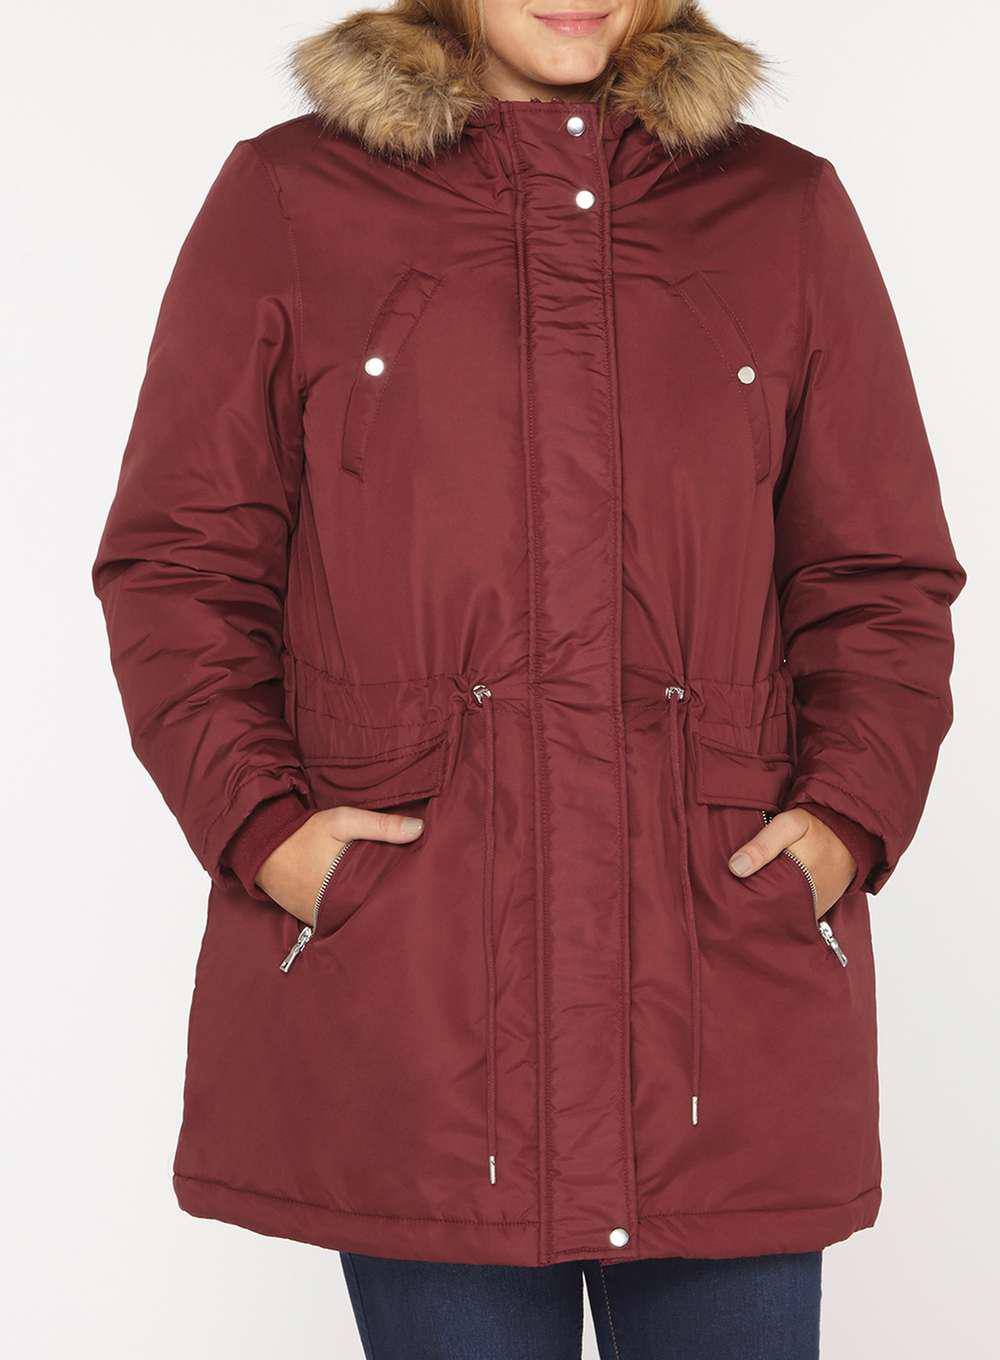 To Buy Dorothy Perkins Womens **Juna Rose Curve Faux Fur Hoodded Parka- Where Can I Order New Sale Online Fake Sale Online RVumwikY7